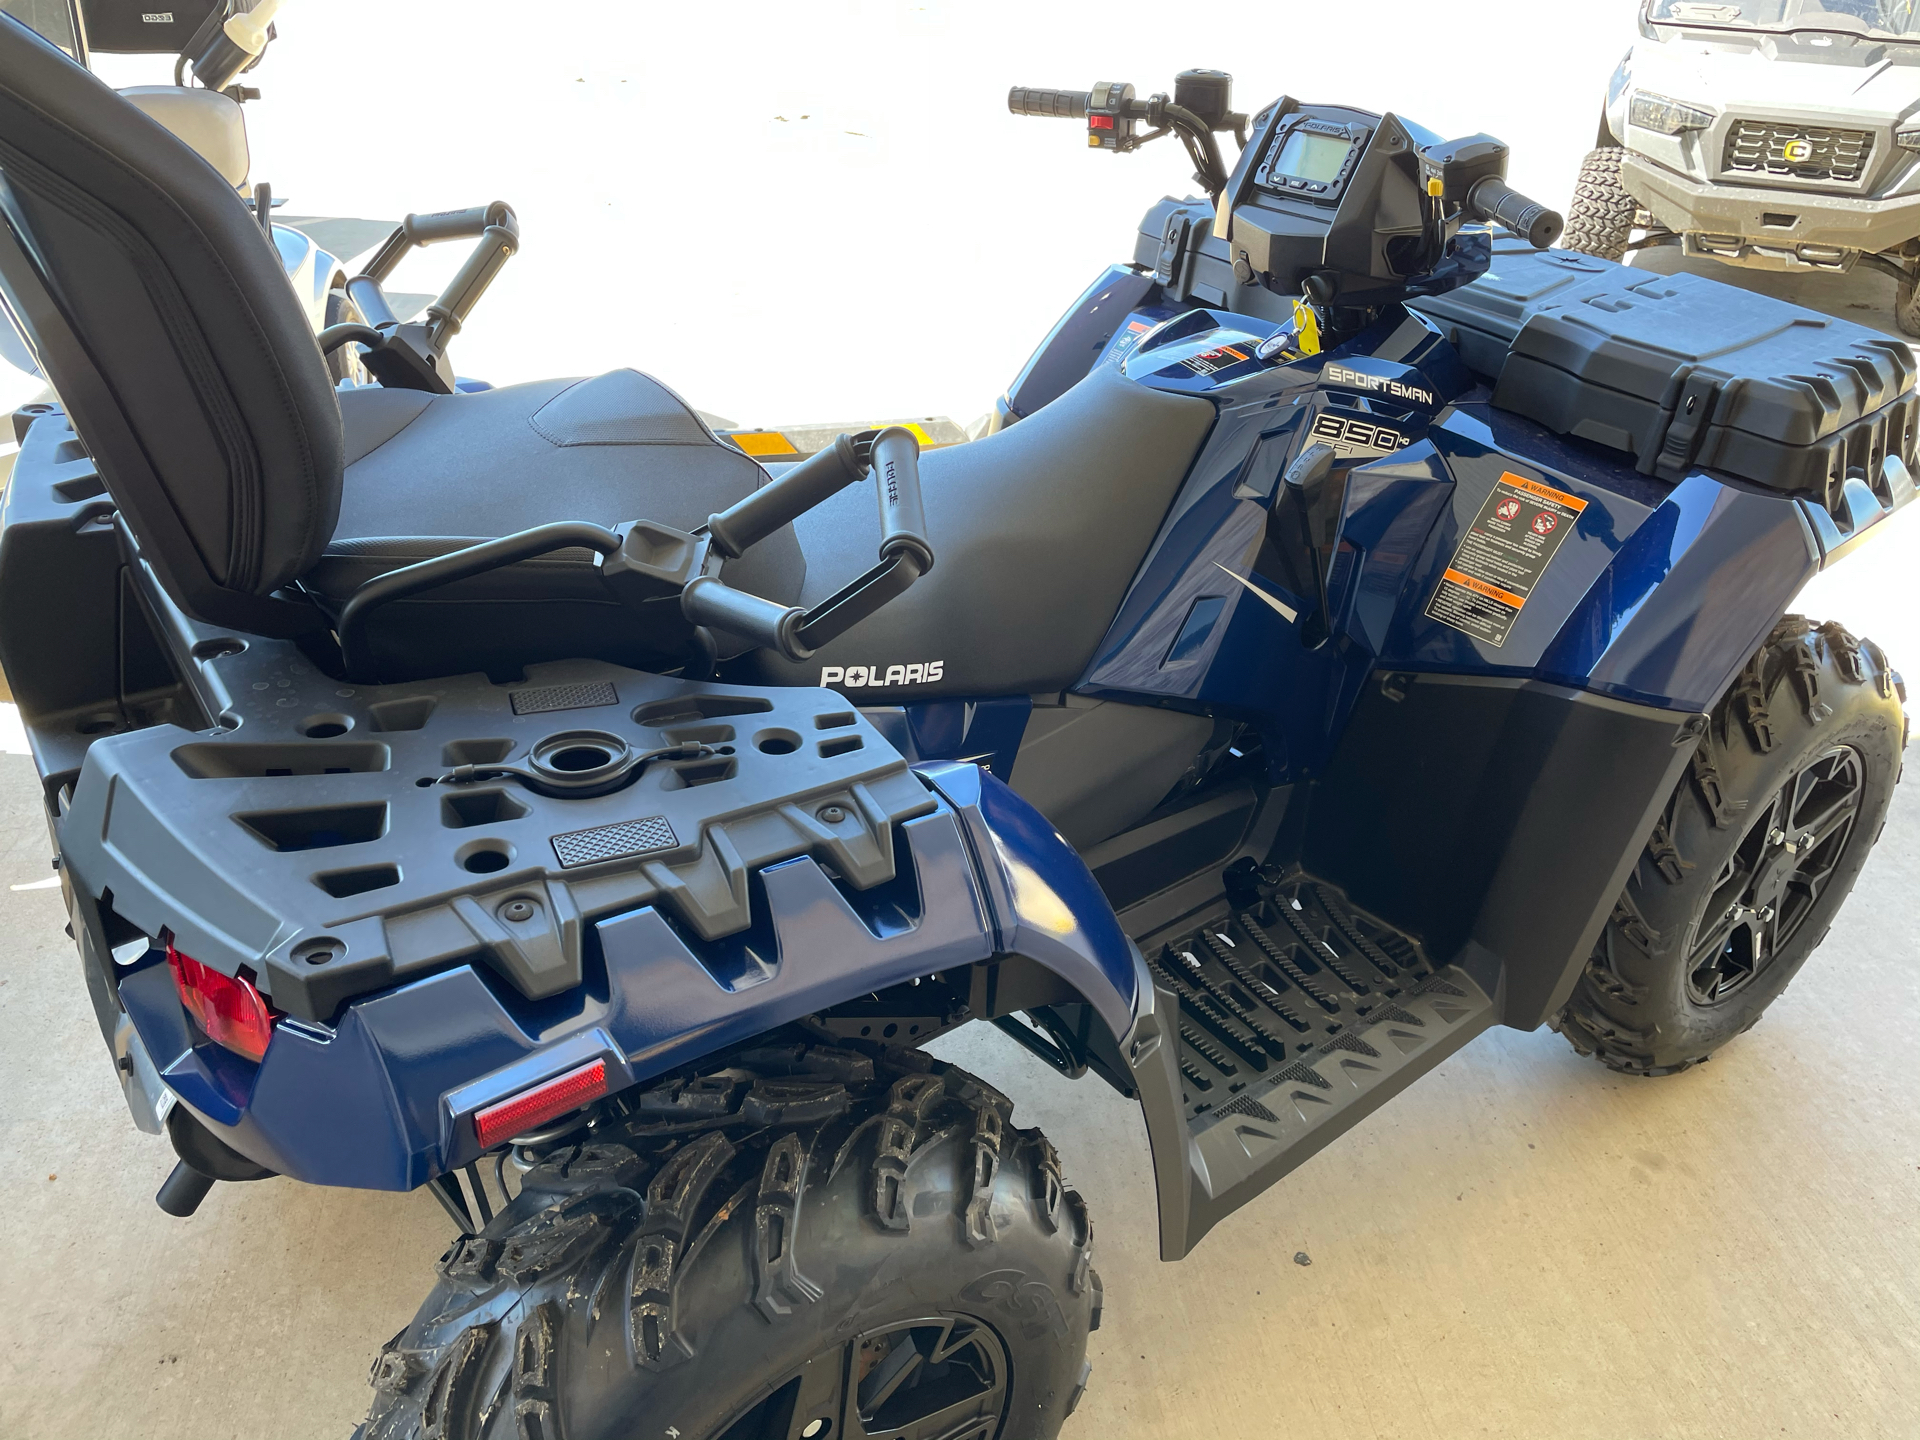 2021 Polaris Sportsman Touring 850 in Marshall, Texas - Photo 6